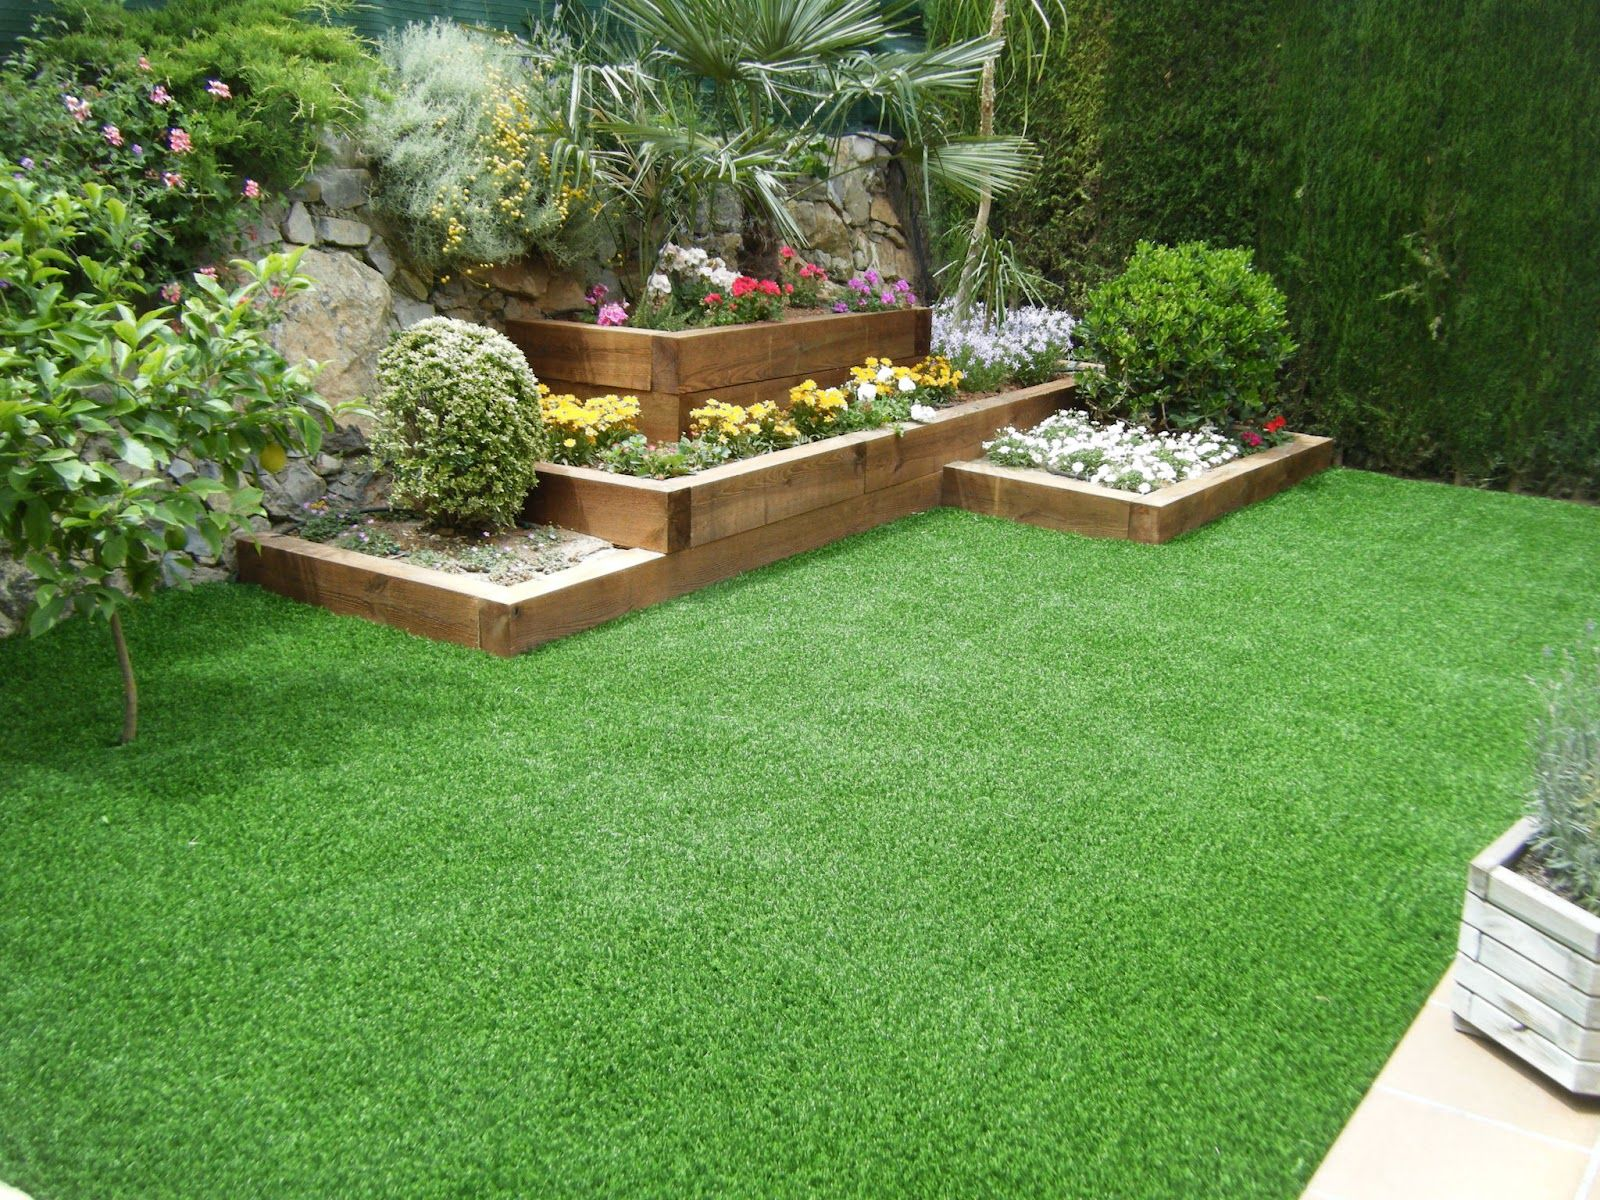 Jadin con traviesas cesped artificial jardin for Jardines pequenos con cesped